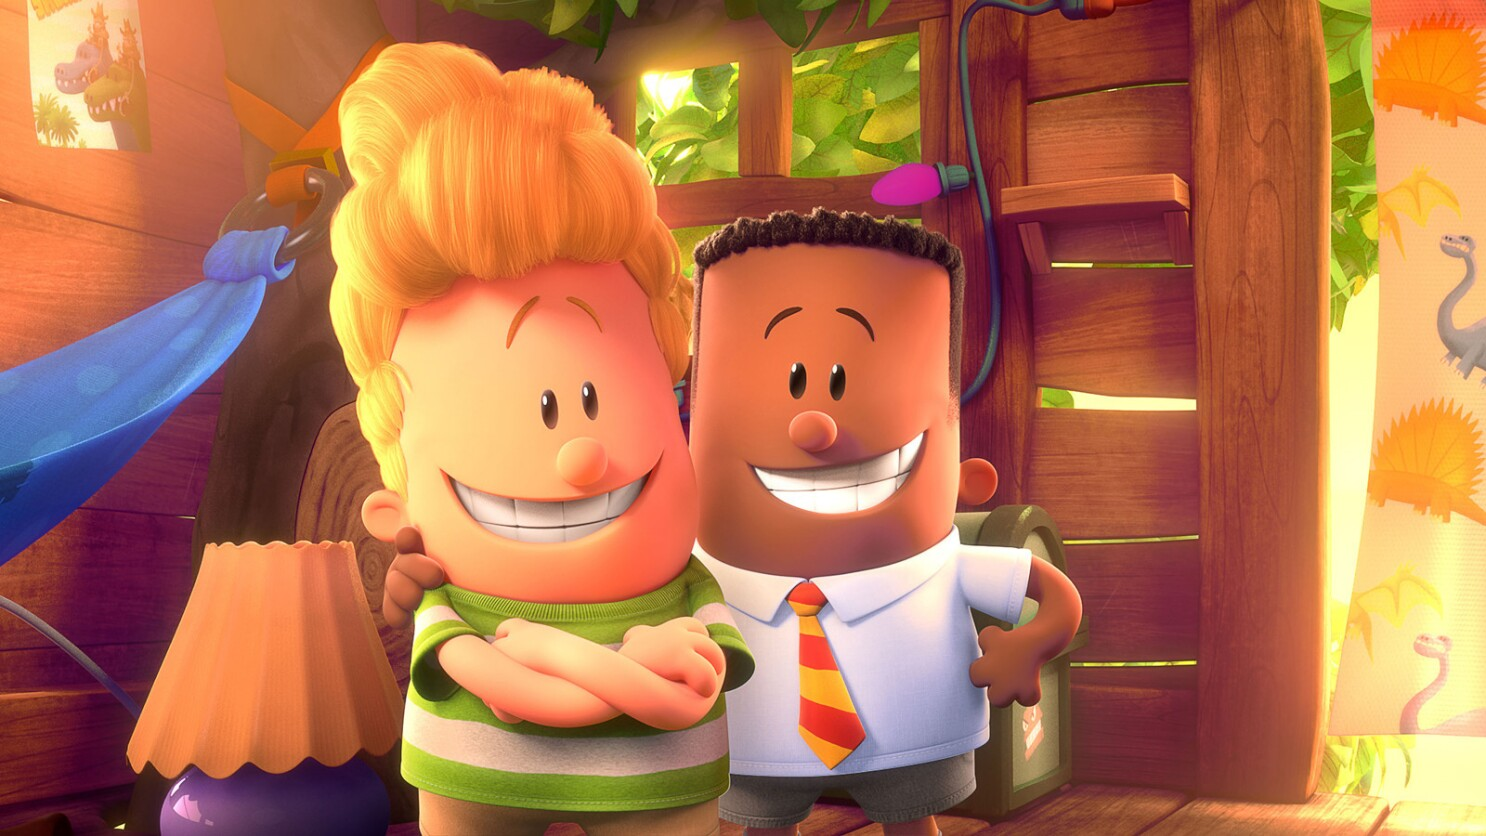 Captain Underpants The First Epic Movie Delivers Wisdom Within Its Bathroom Not Locker Room Humor Los Angeles Times